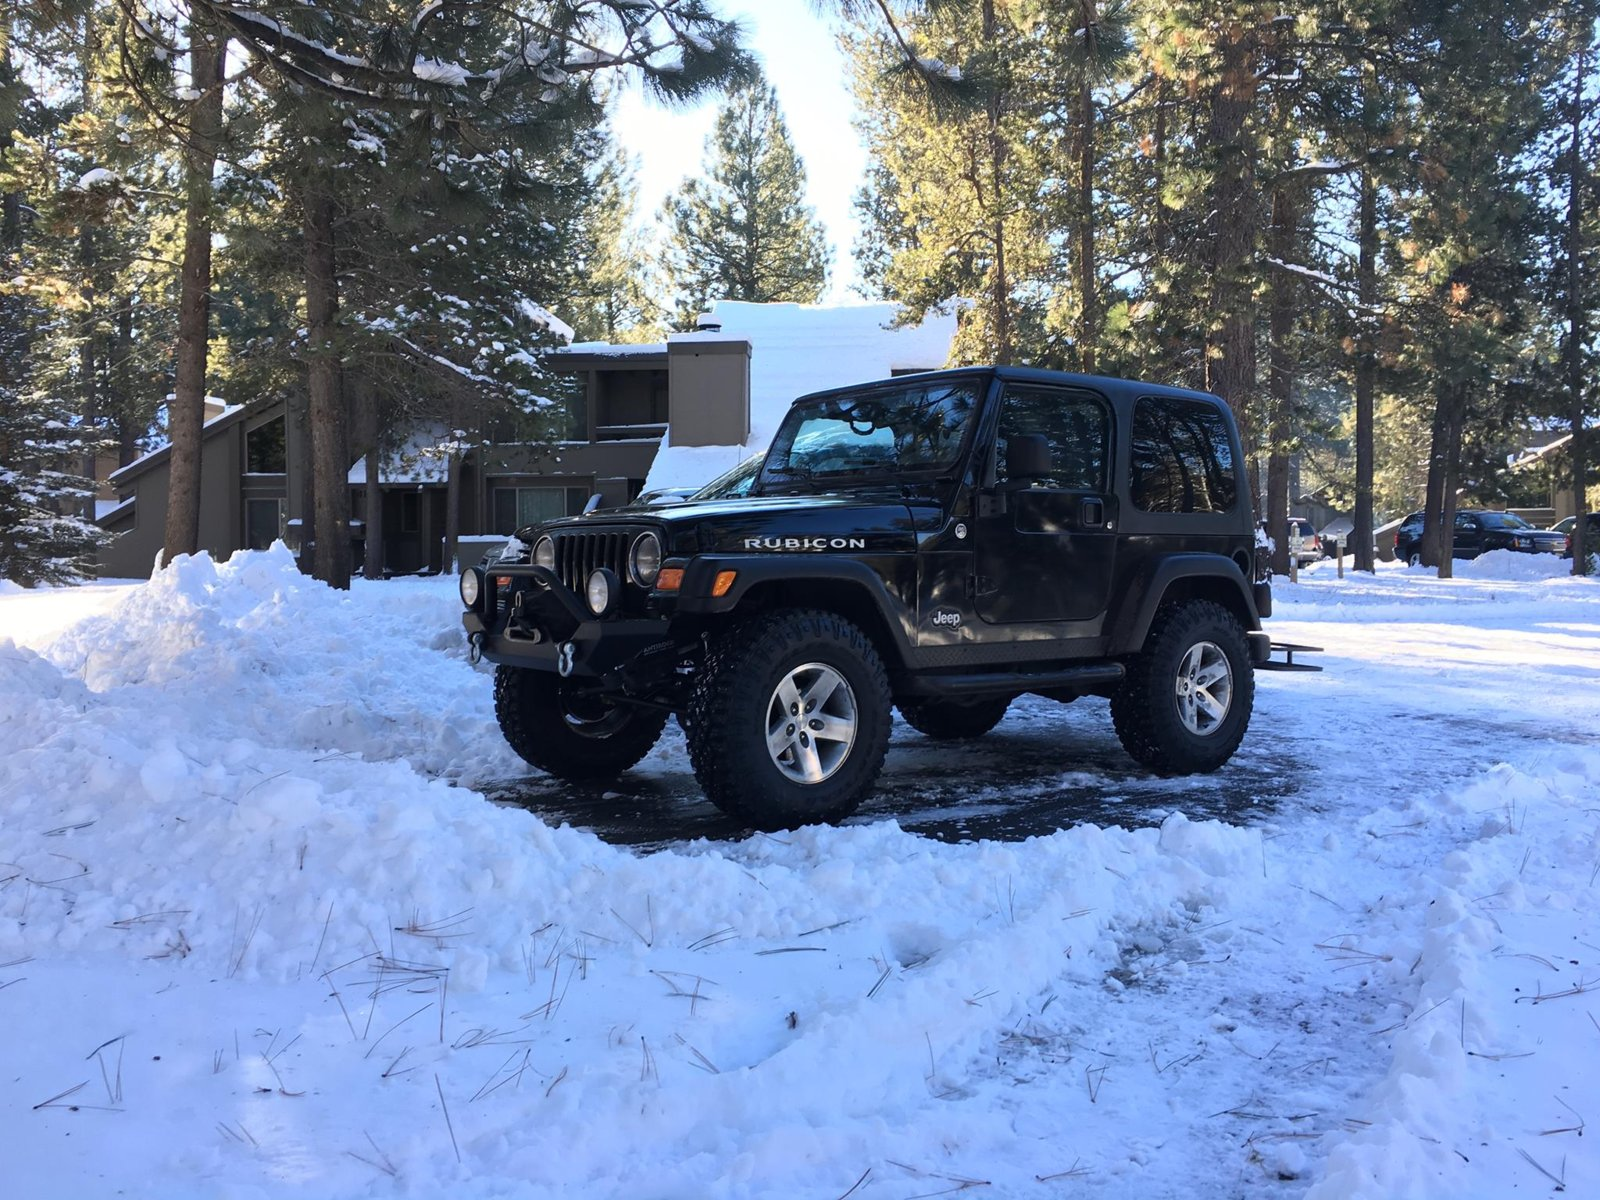 17 Inch Wheels 33 Inch Tires Advice Jeep Wrangler Tj Forum